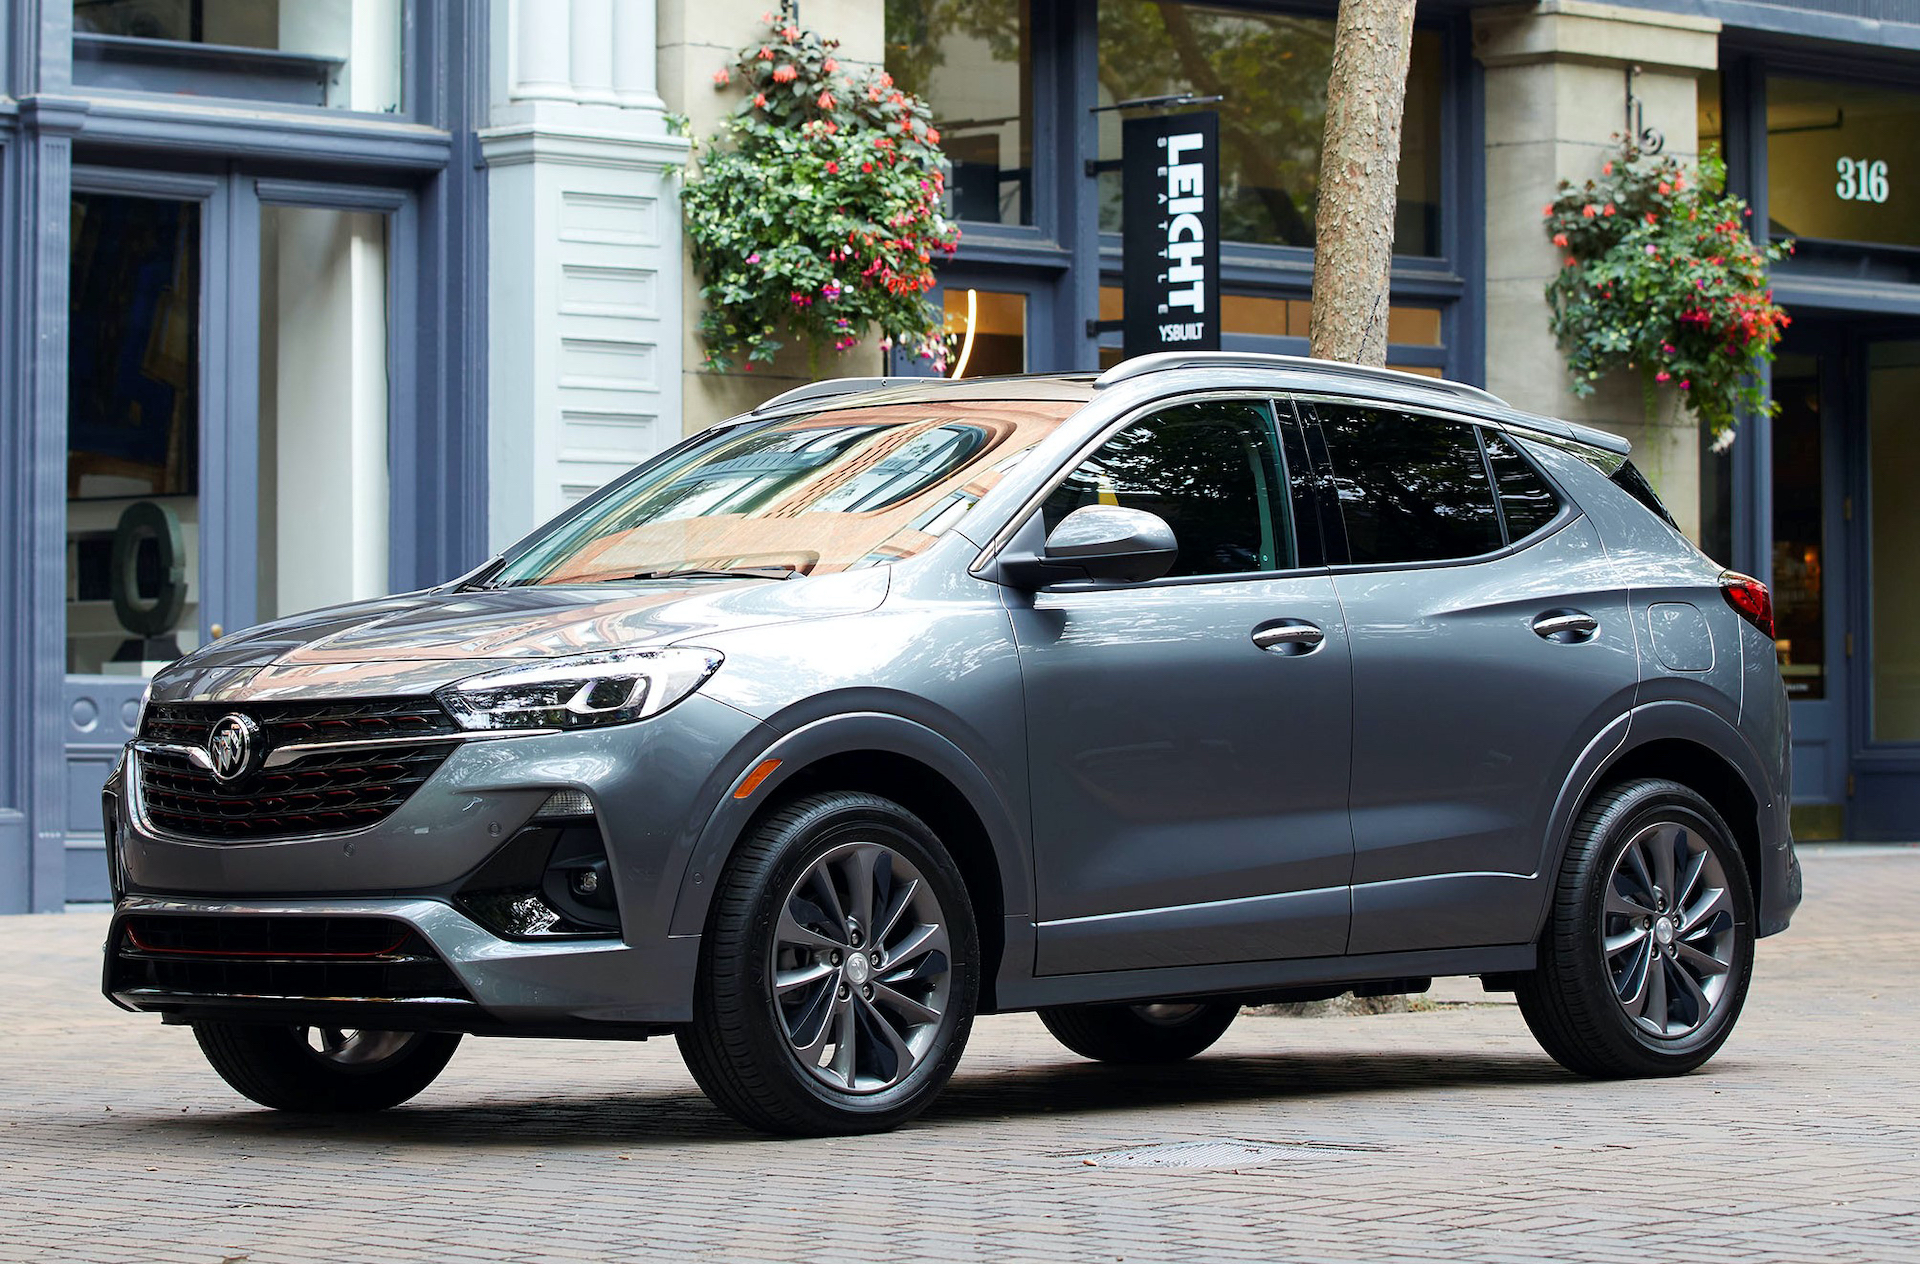 2021 Buick Encore Review, Ratings, Specs, Prices, And Photos New 2021 Buick Encore Essence Reviews, Fwd, Specs